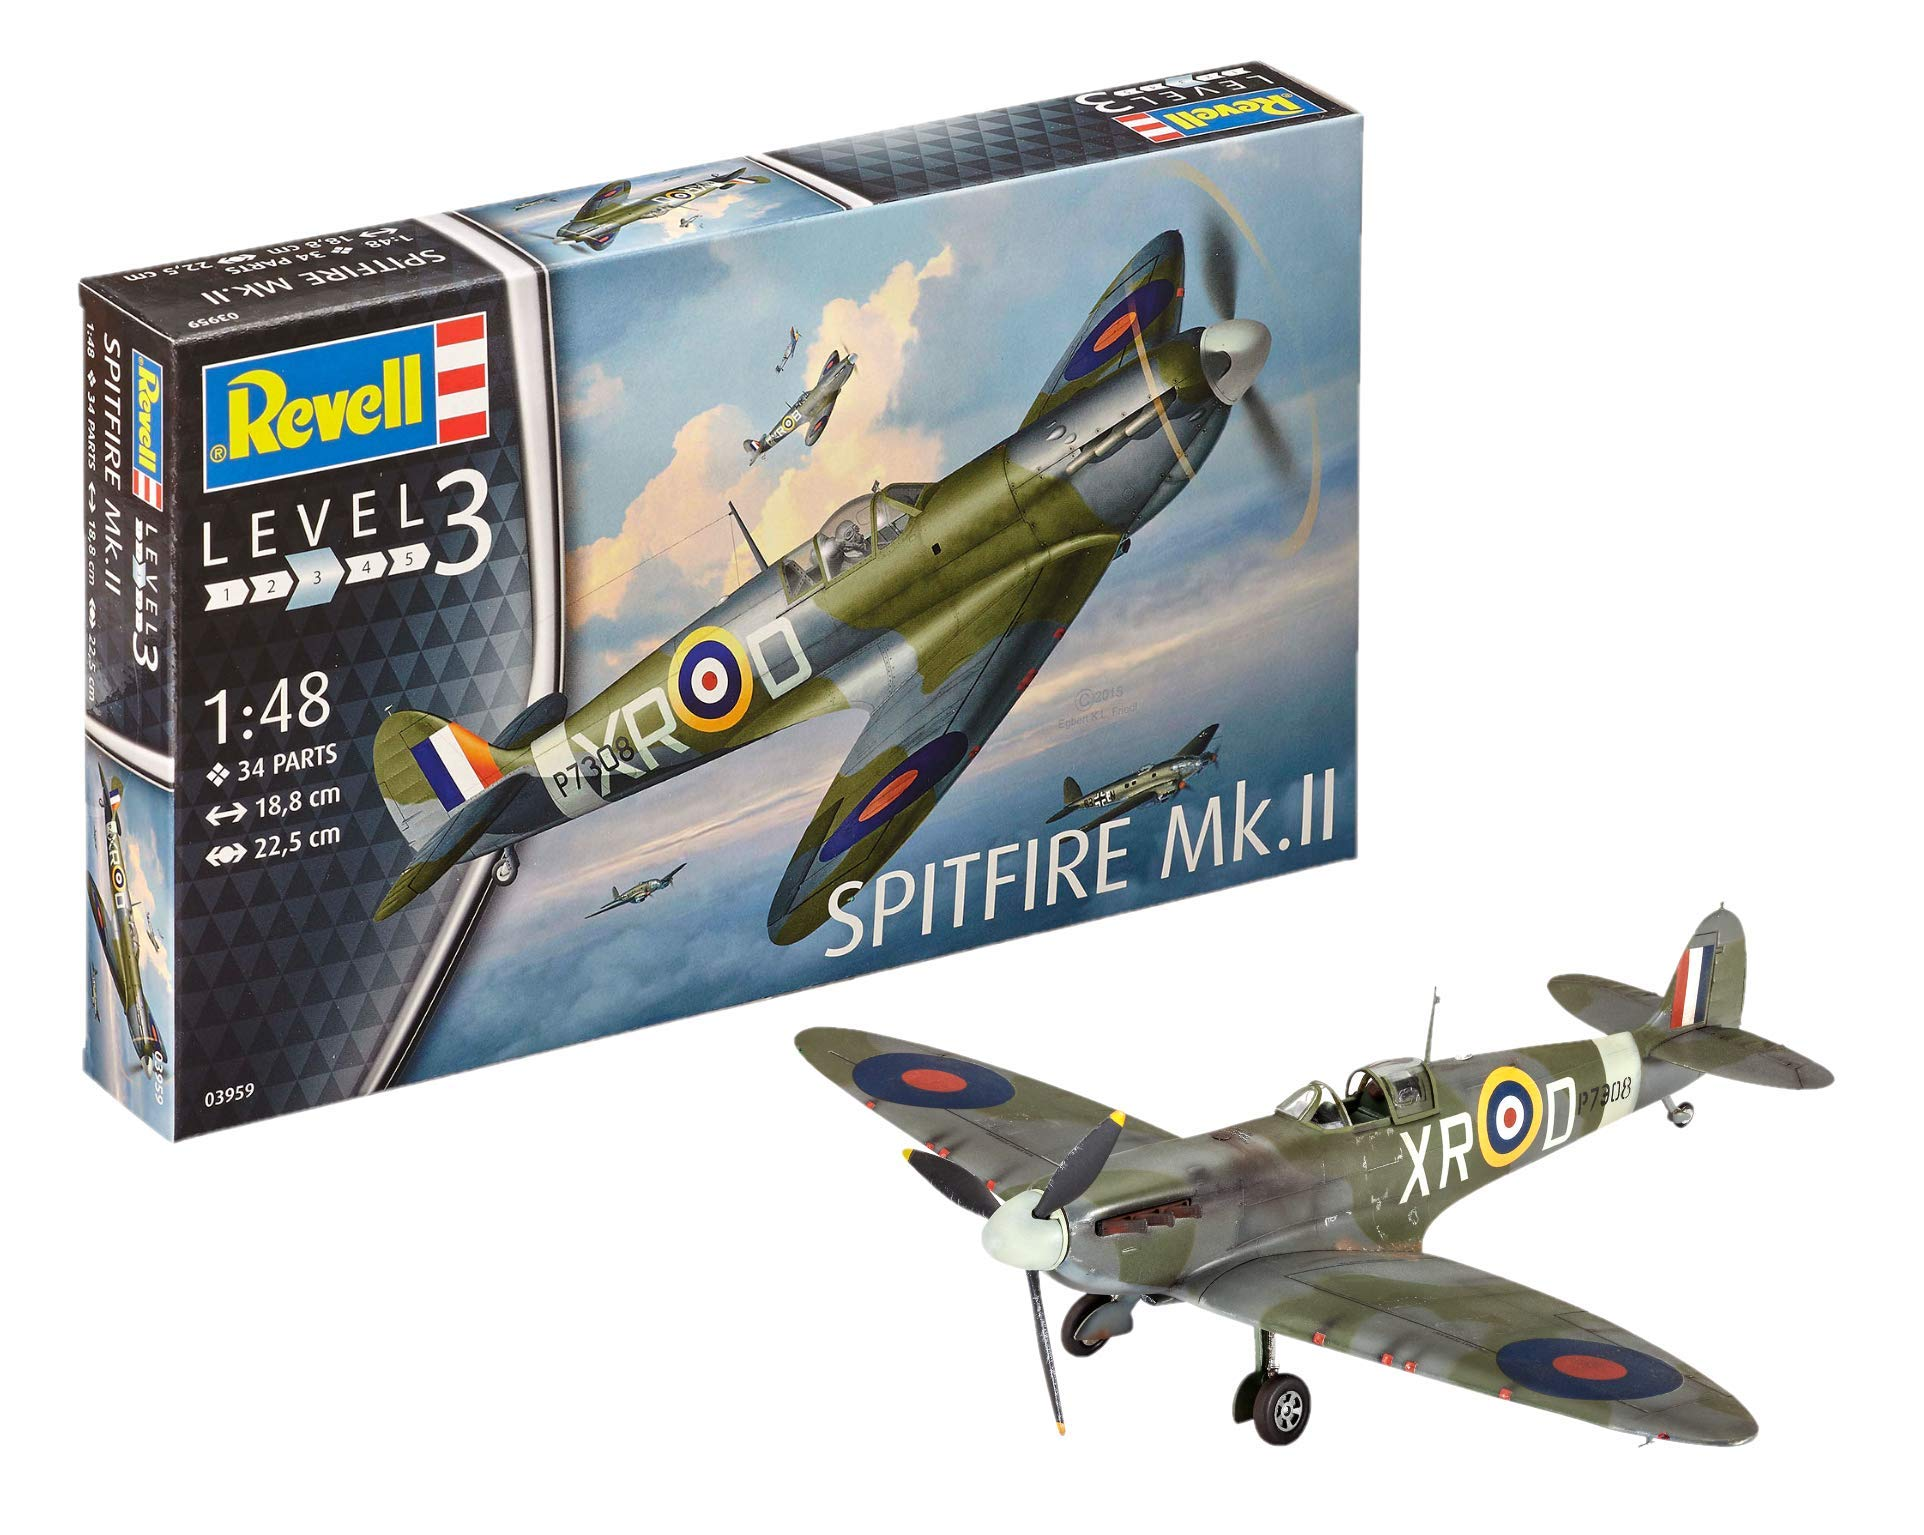 Revell Spitfire Mk.II Model Kit, 1: 48 Scale